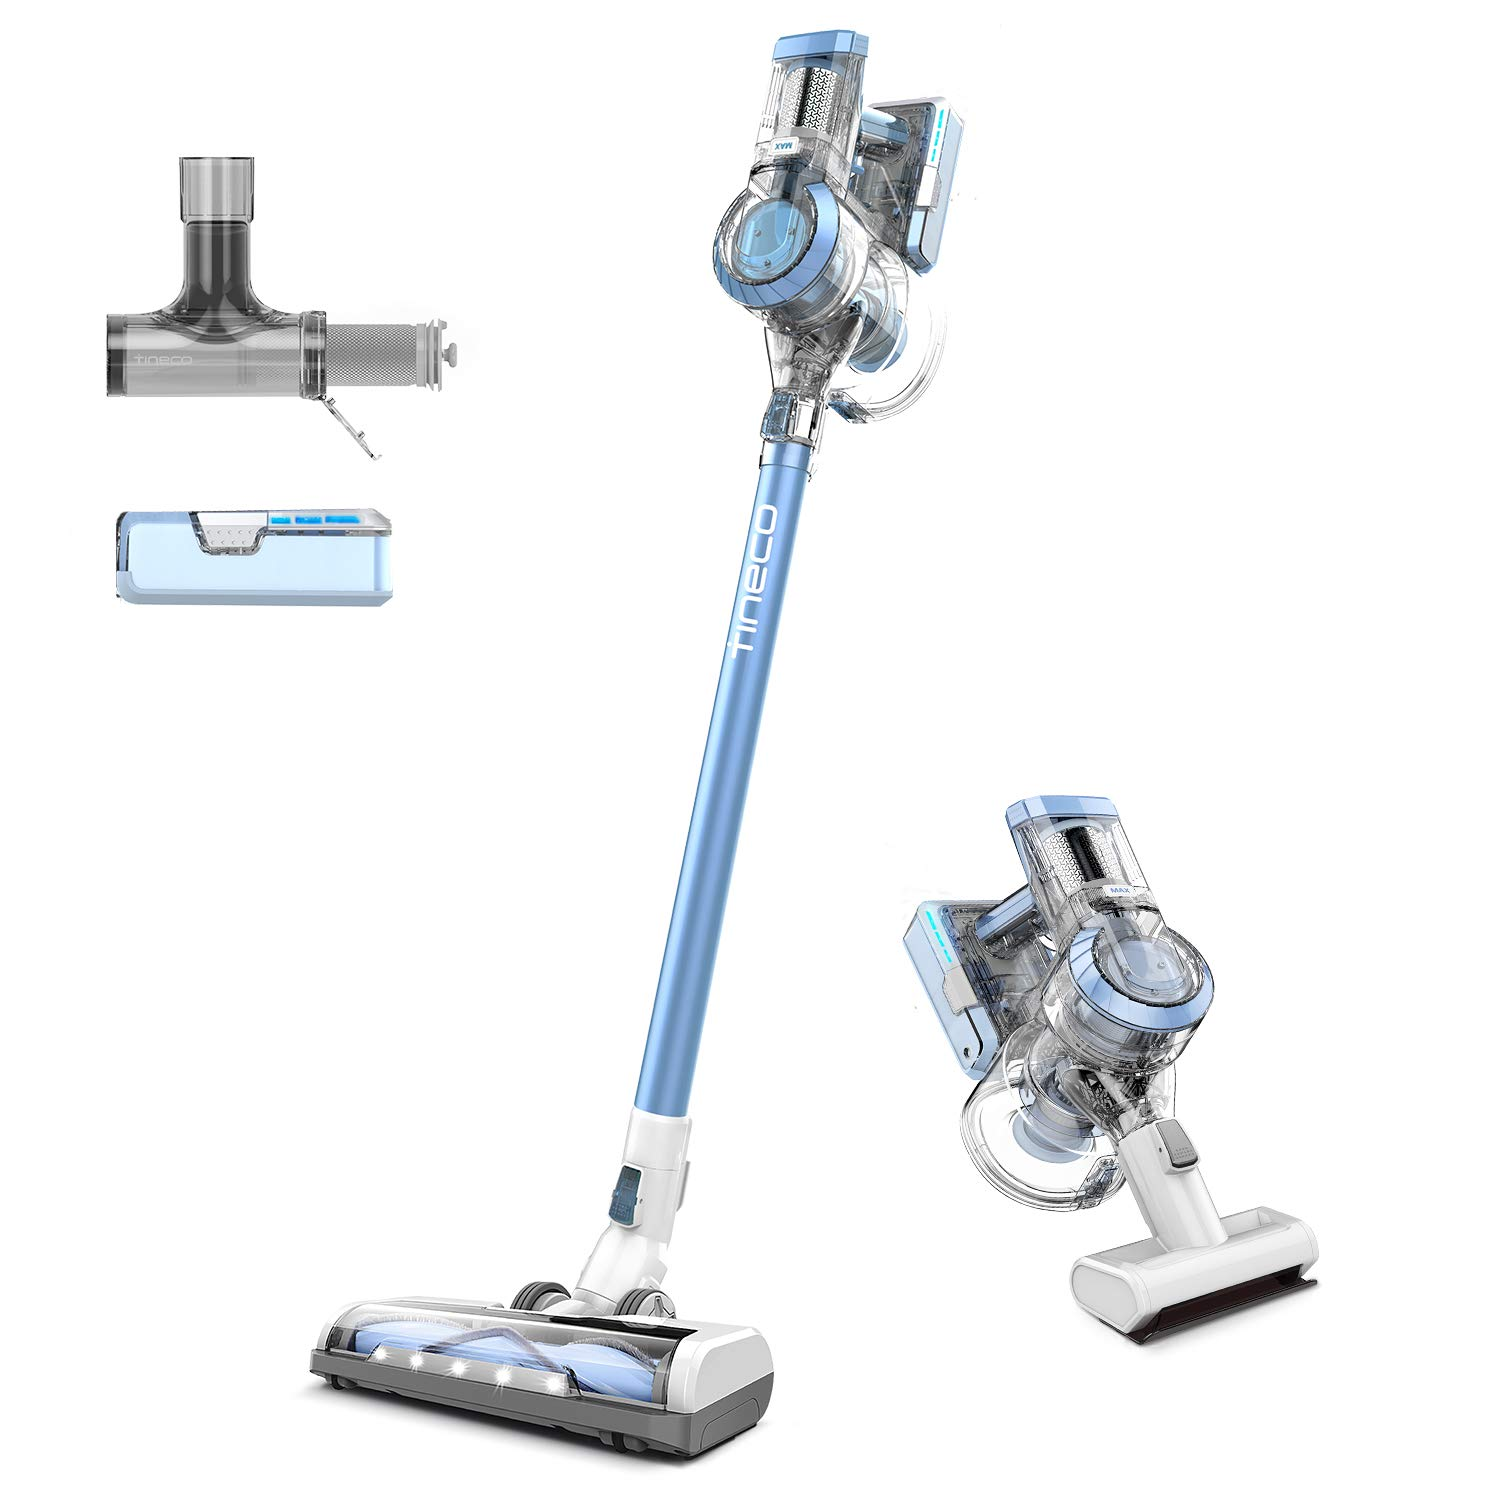 Tineco A11 Hero Cordless Vacuum, Stick Vacuum Cleaner 450W Digital Motor Up to 60 Minutes Dual Charging Powerhouse, High Power, Lightweight Handheld. 2 Year Warranty. by Tineco